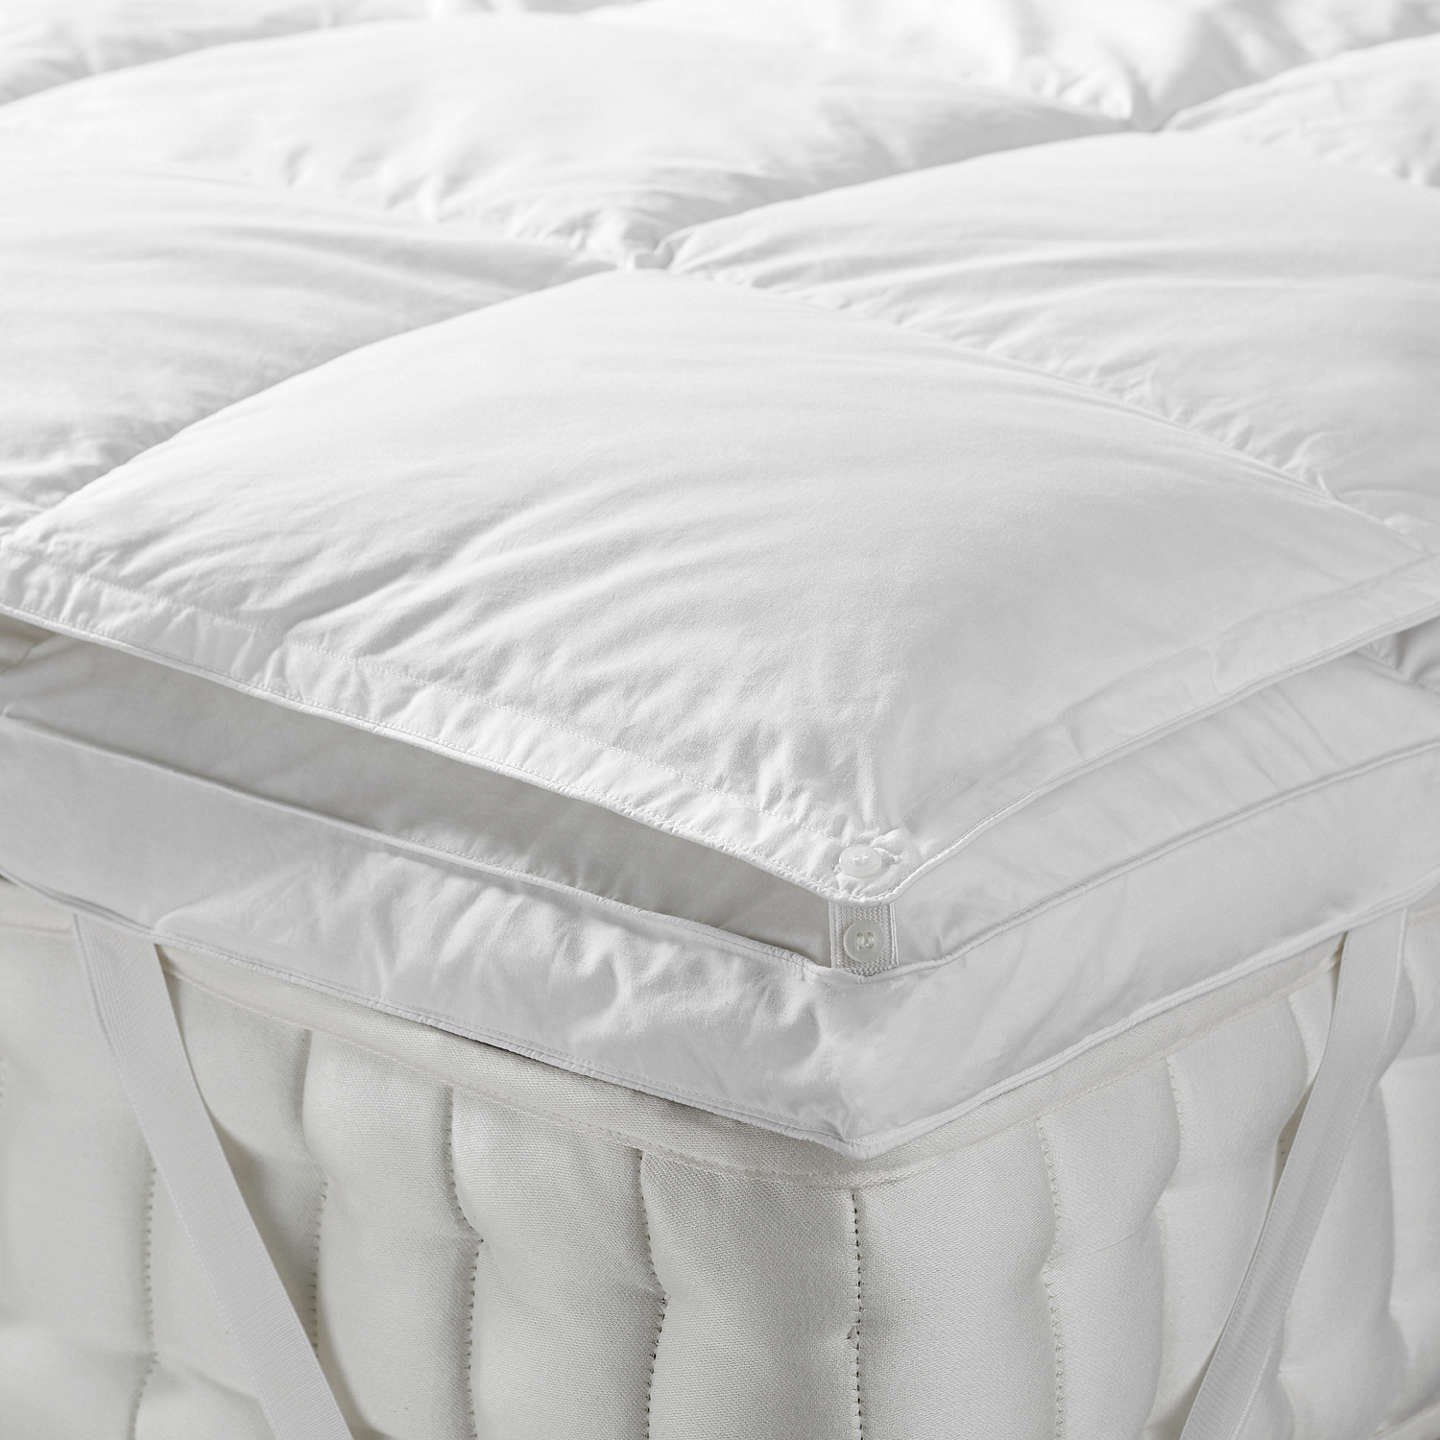 mattress ultimate unique visco fort memory best awesome pillow of inch serta foam topper top